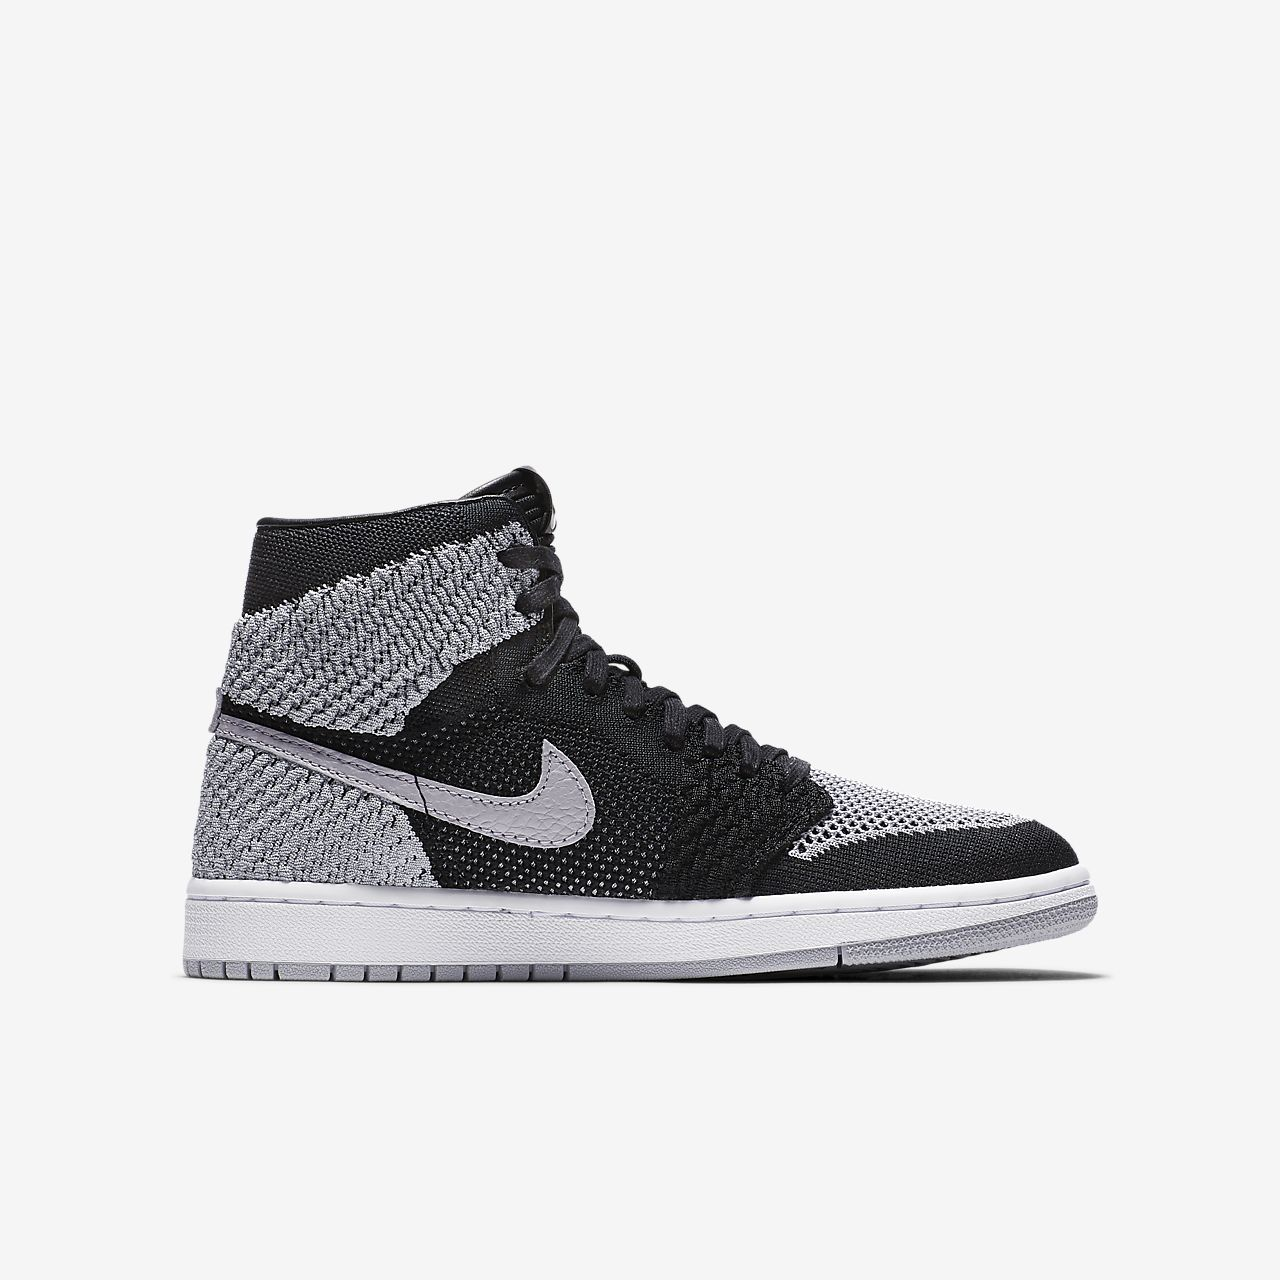 ... Air Jordan 1 Retro High Flyknit Big Kids' Shoe